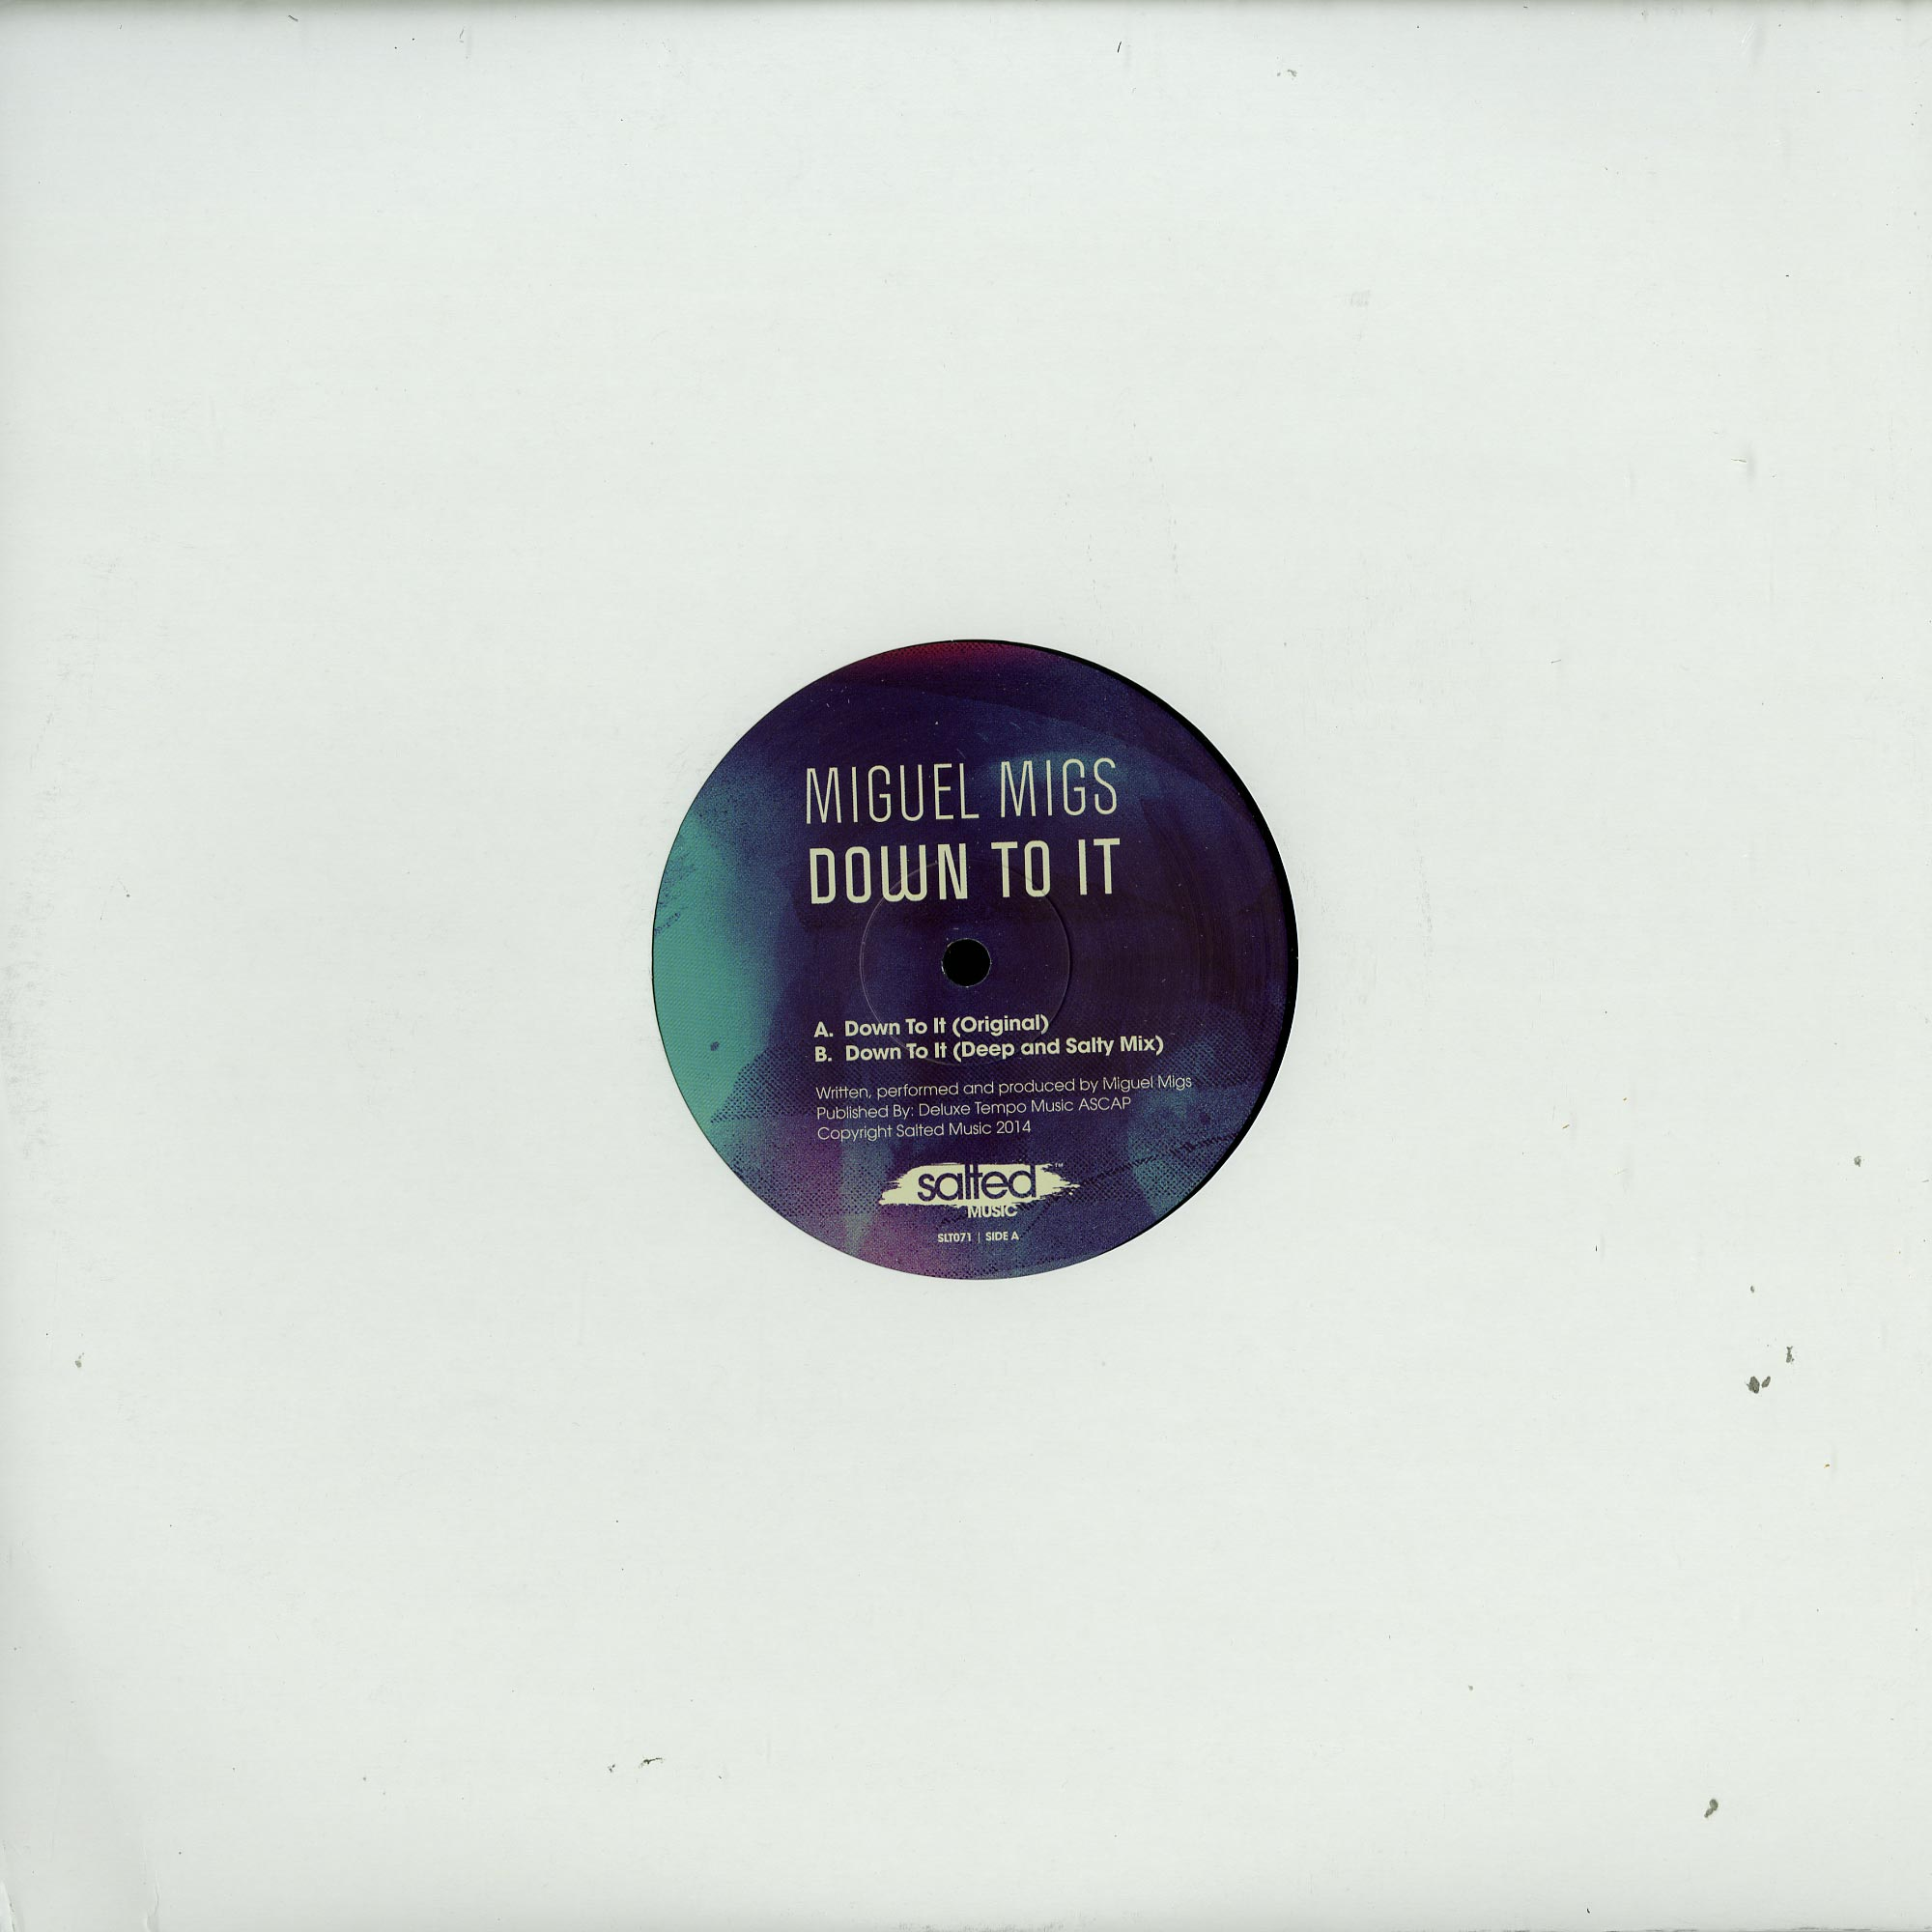 Miguel Migs - DOWN TO IT